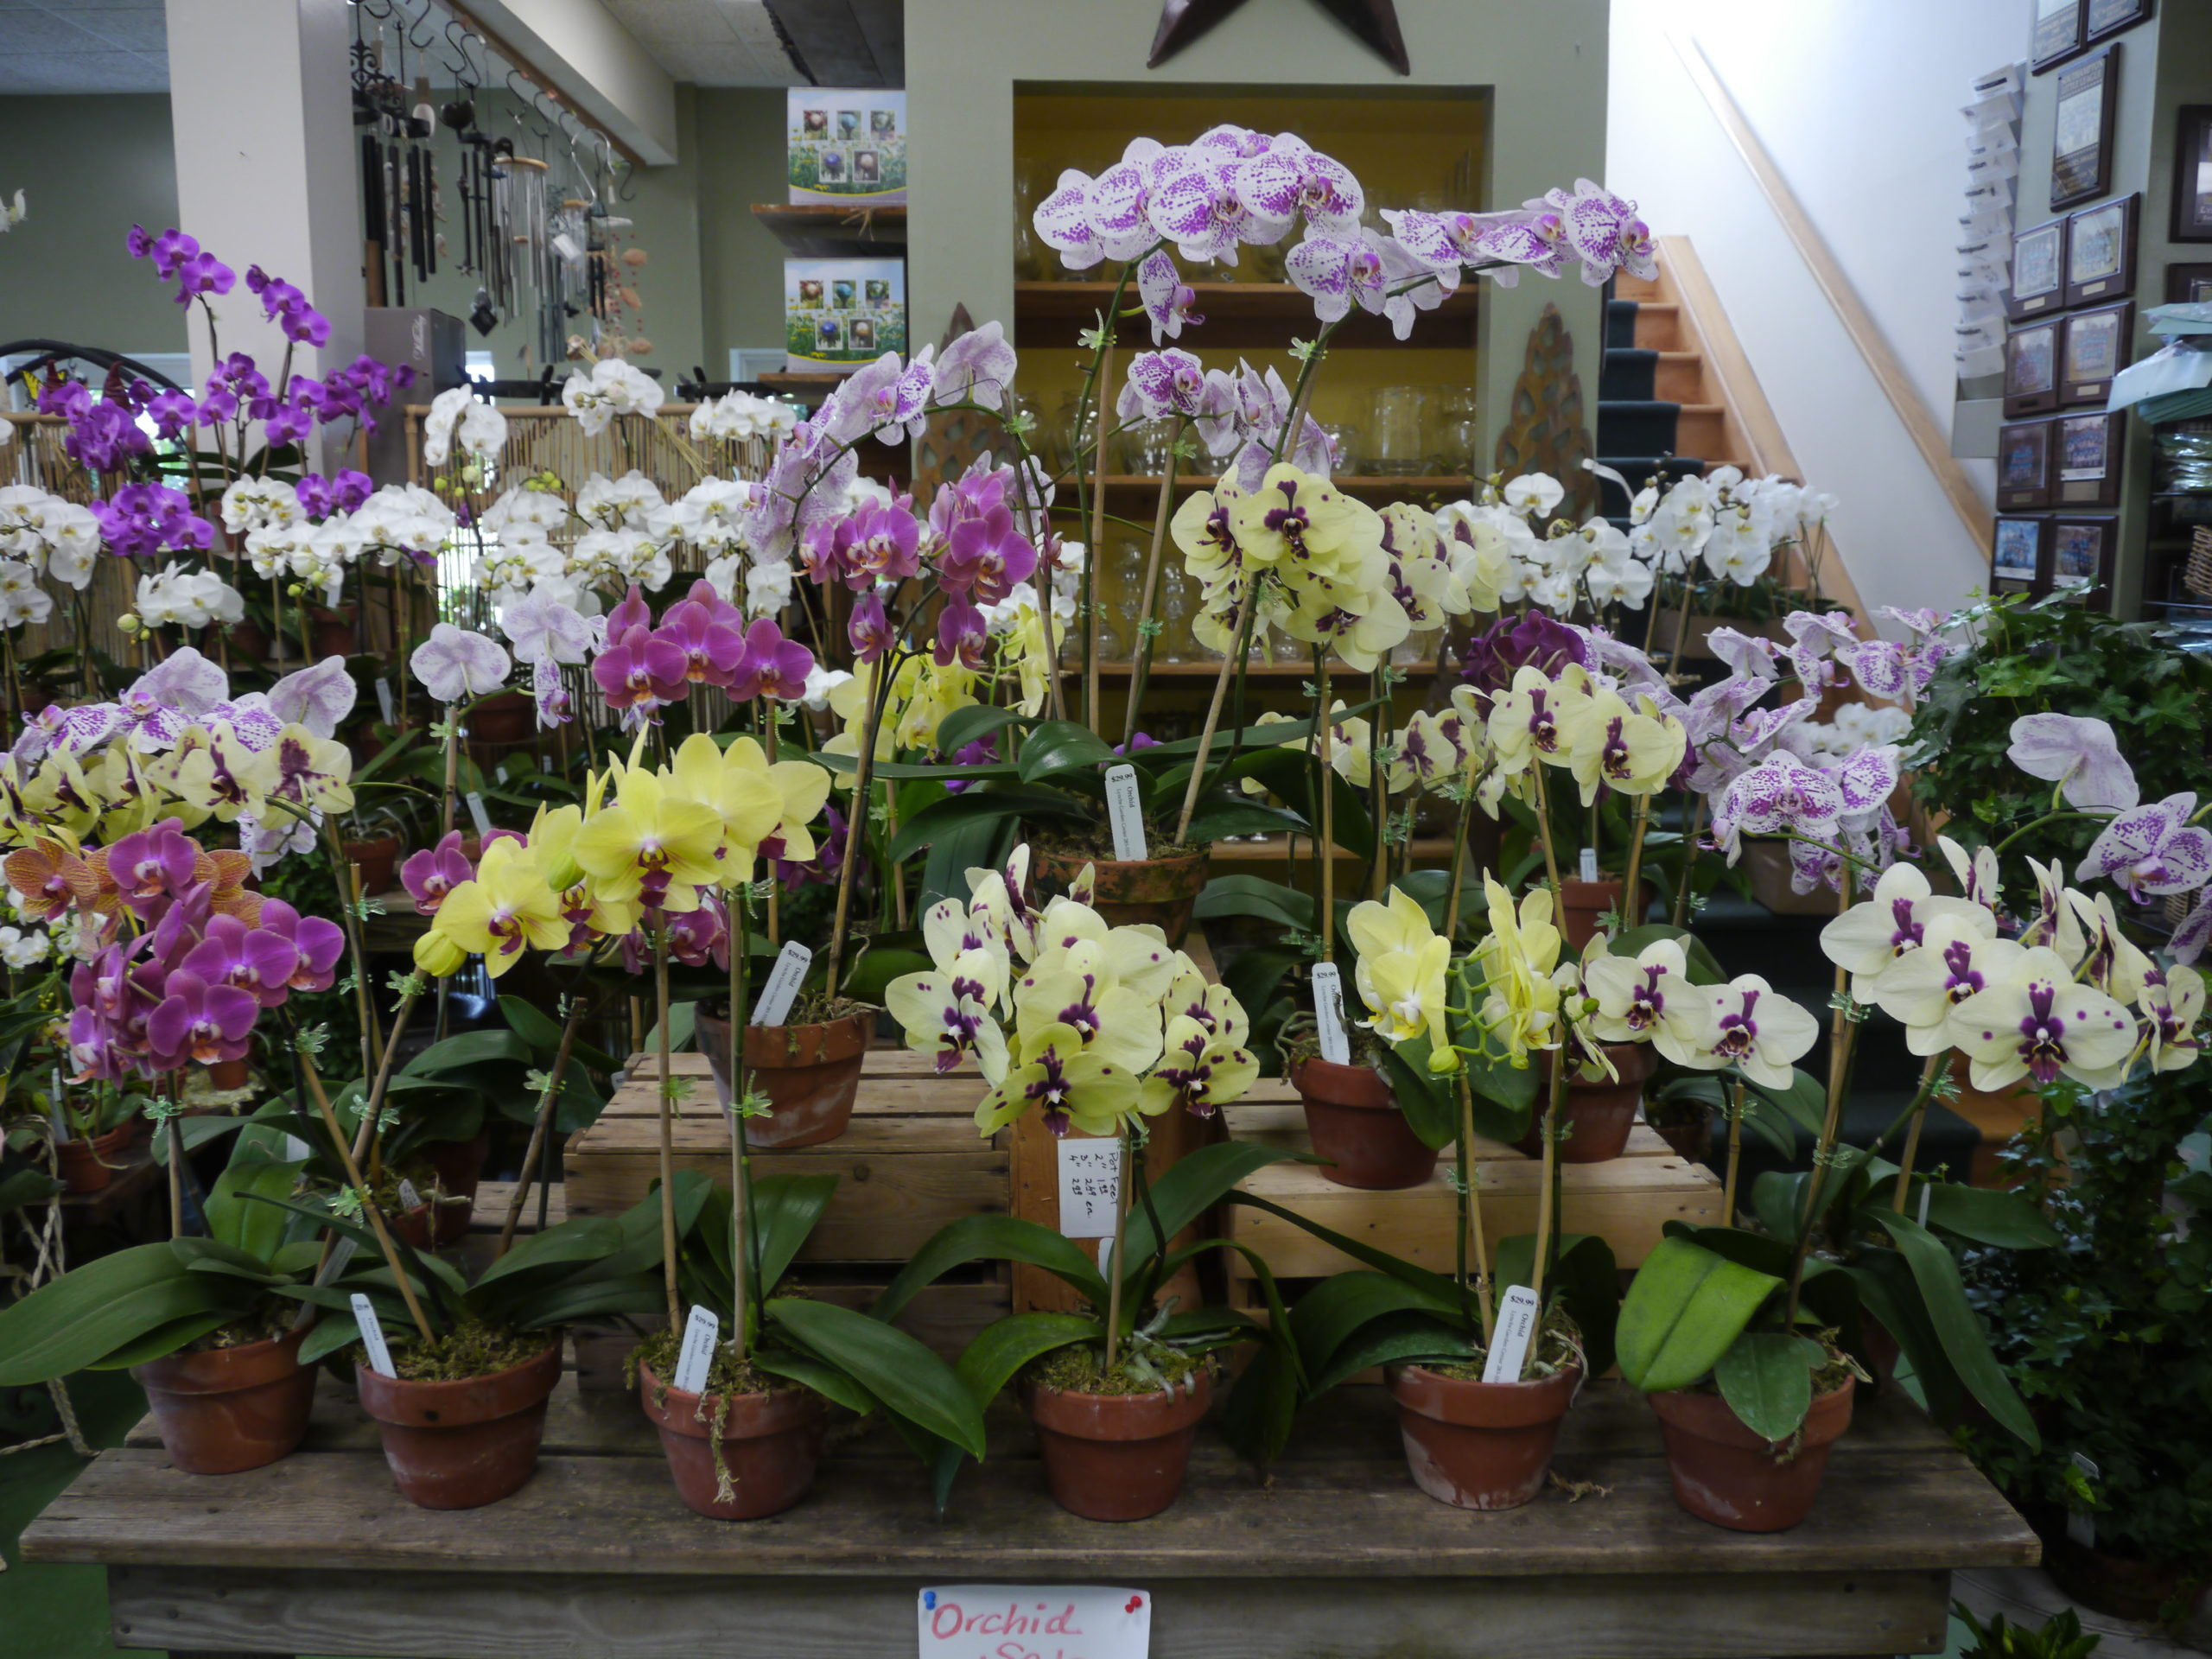 Most of the East End's garden centers and plant shops have lots of orchids at this time of the year, but they go very, very fast.